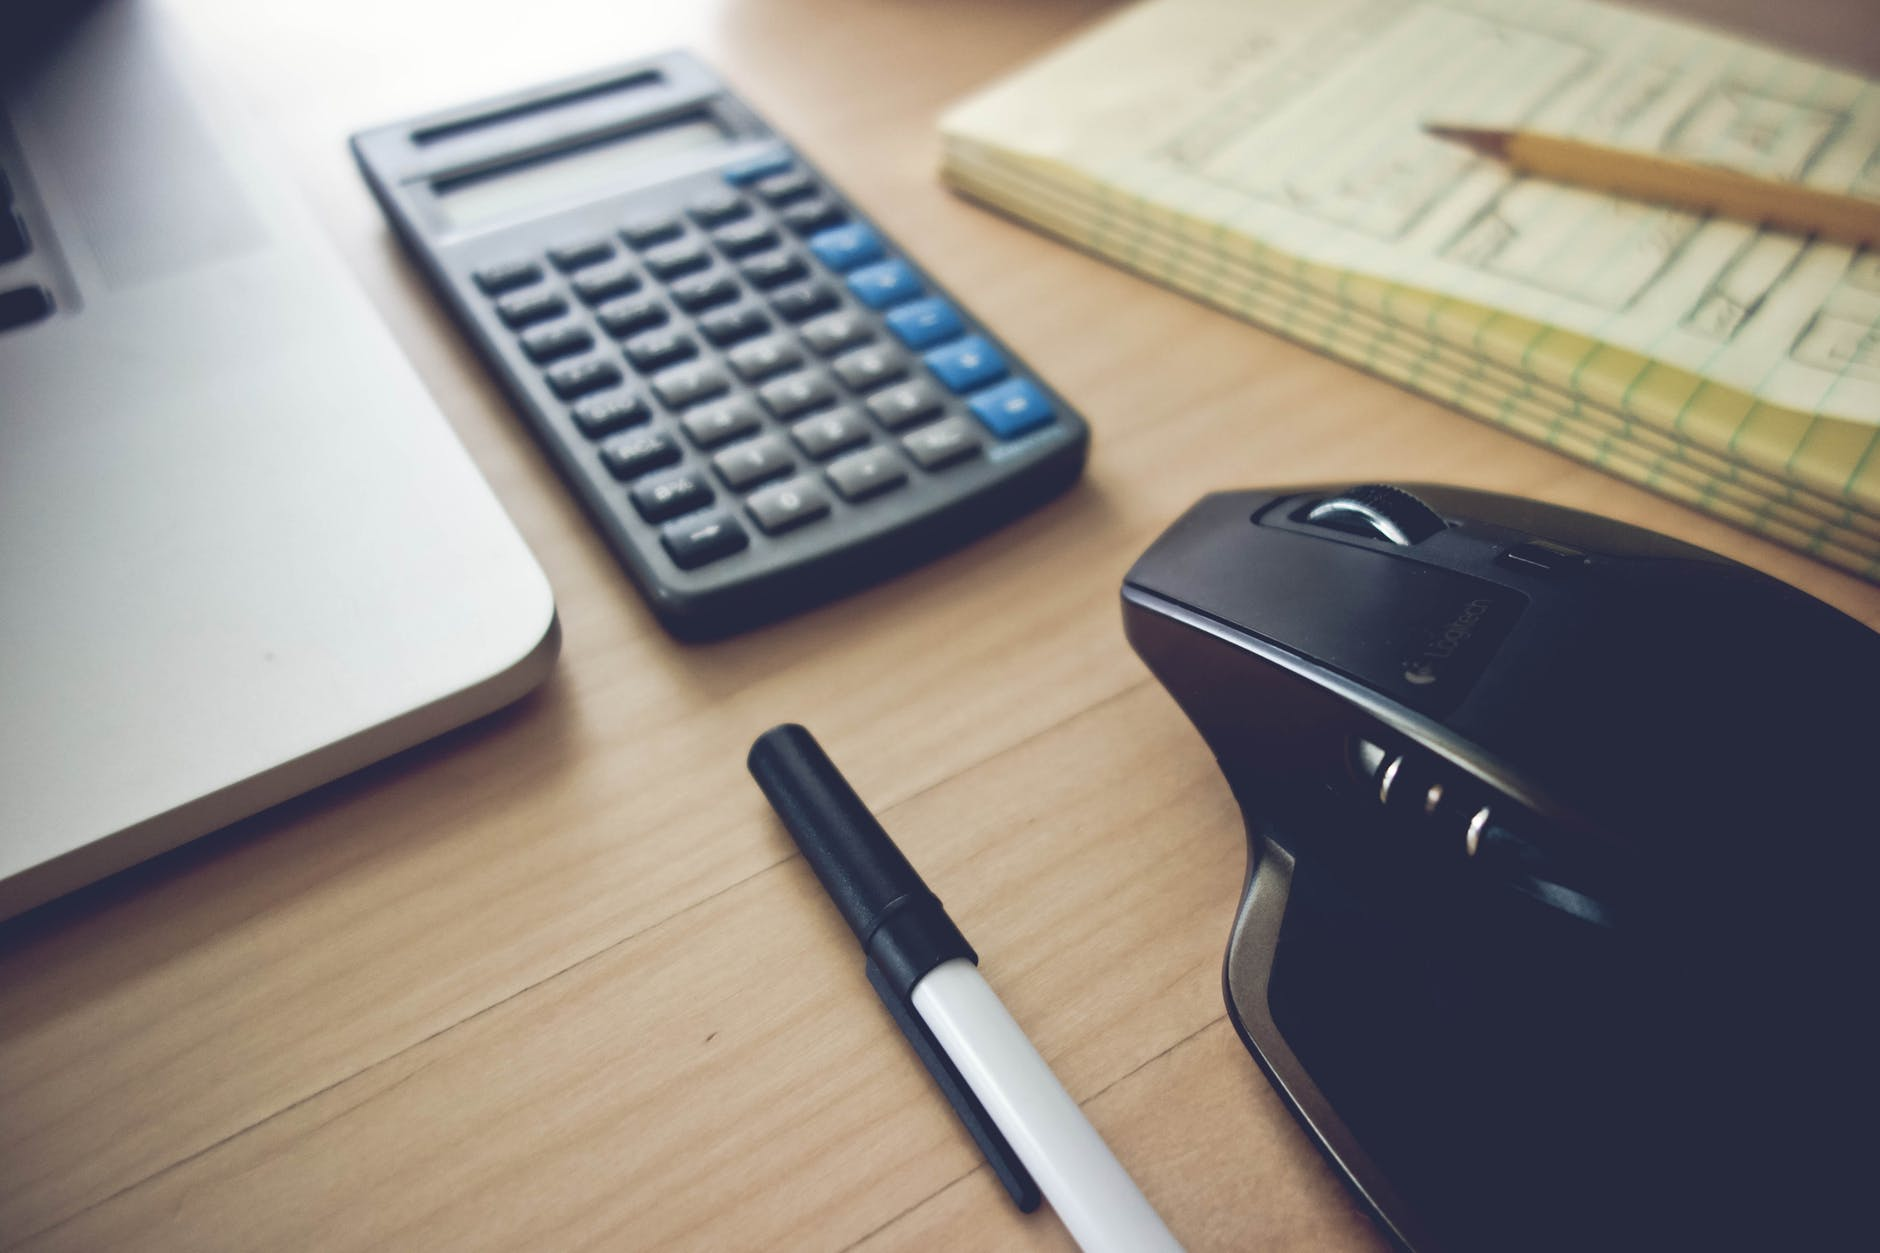 calculator, pen, mouse and a paper on the top